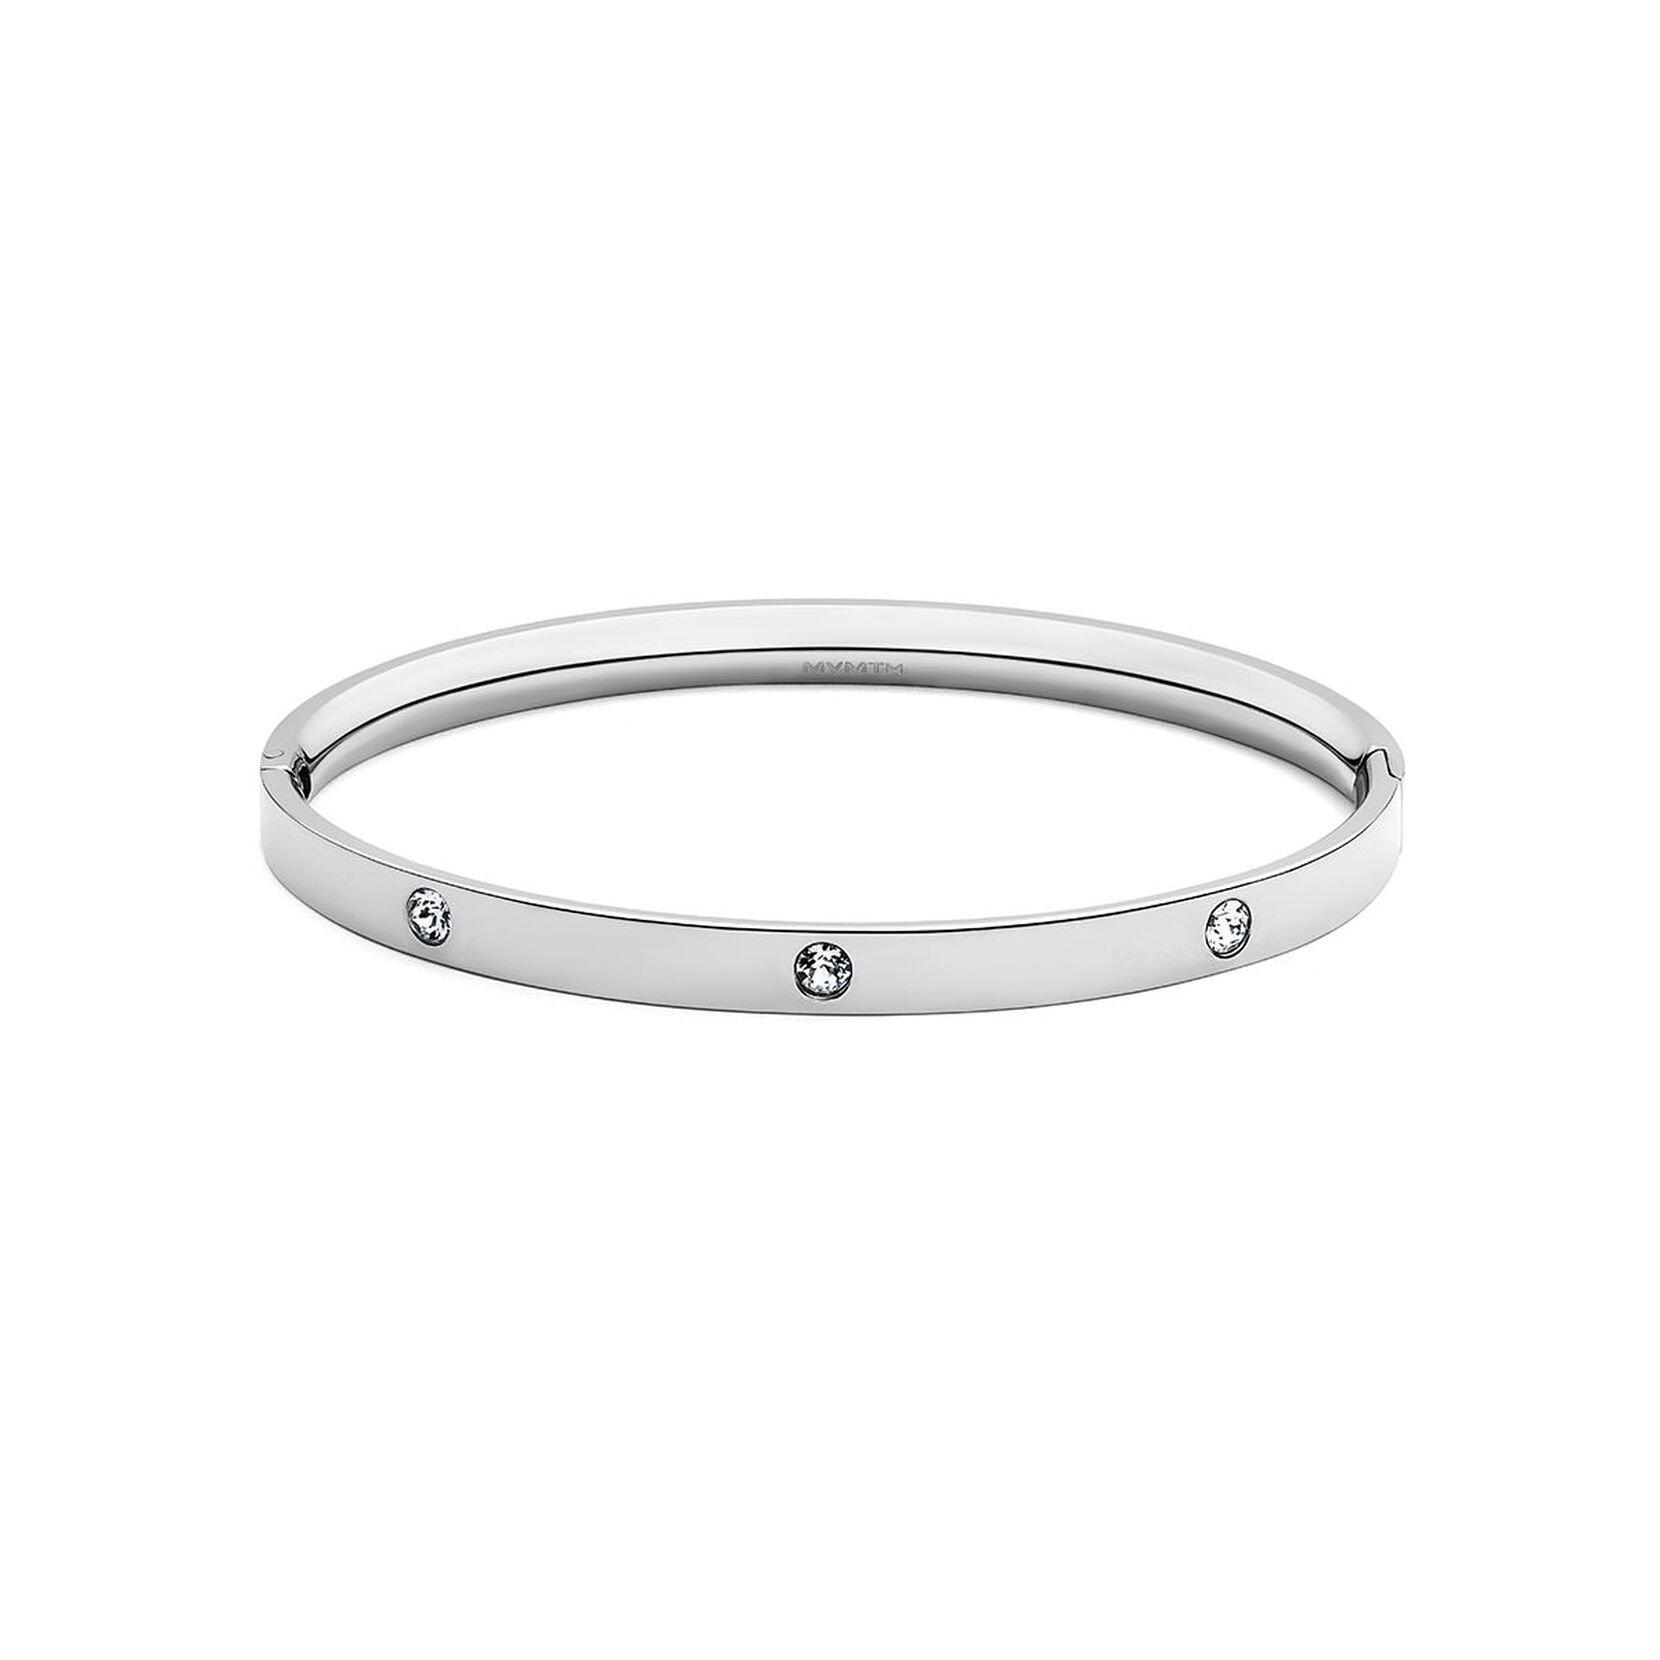 Crystal Ellipse Bangle